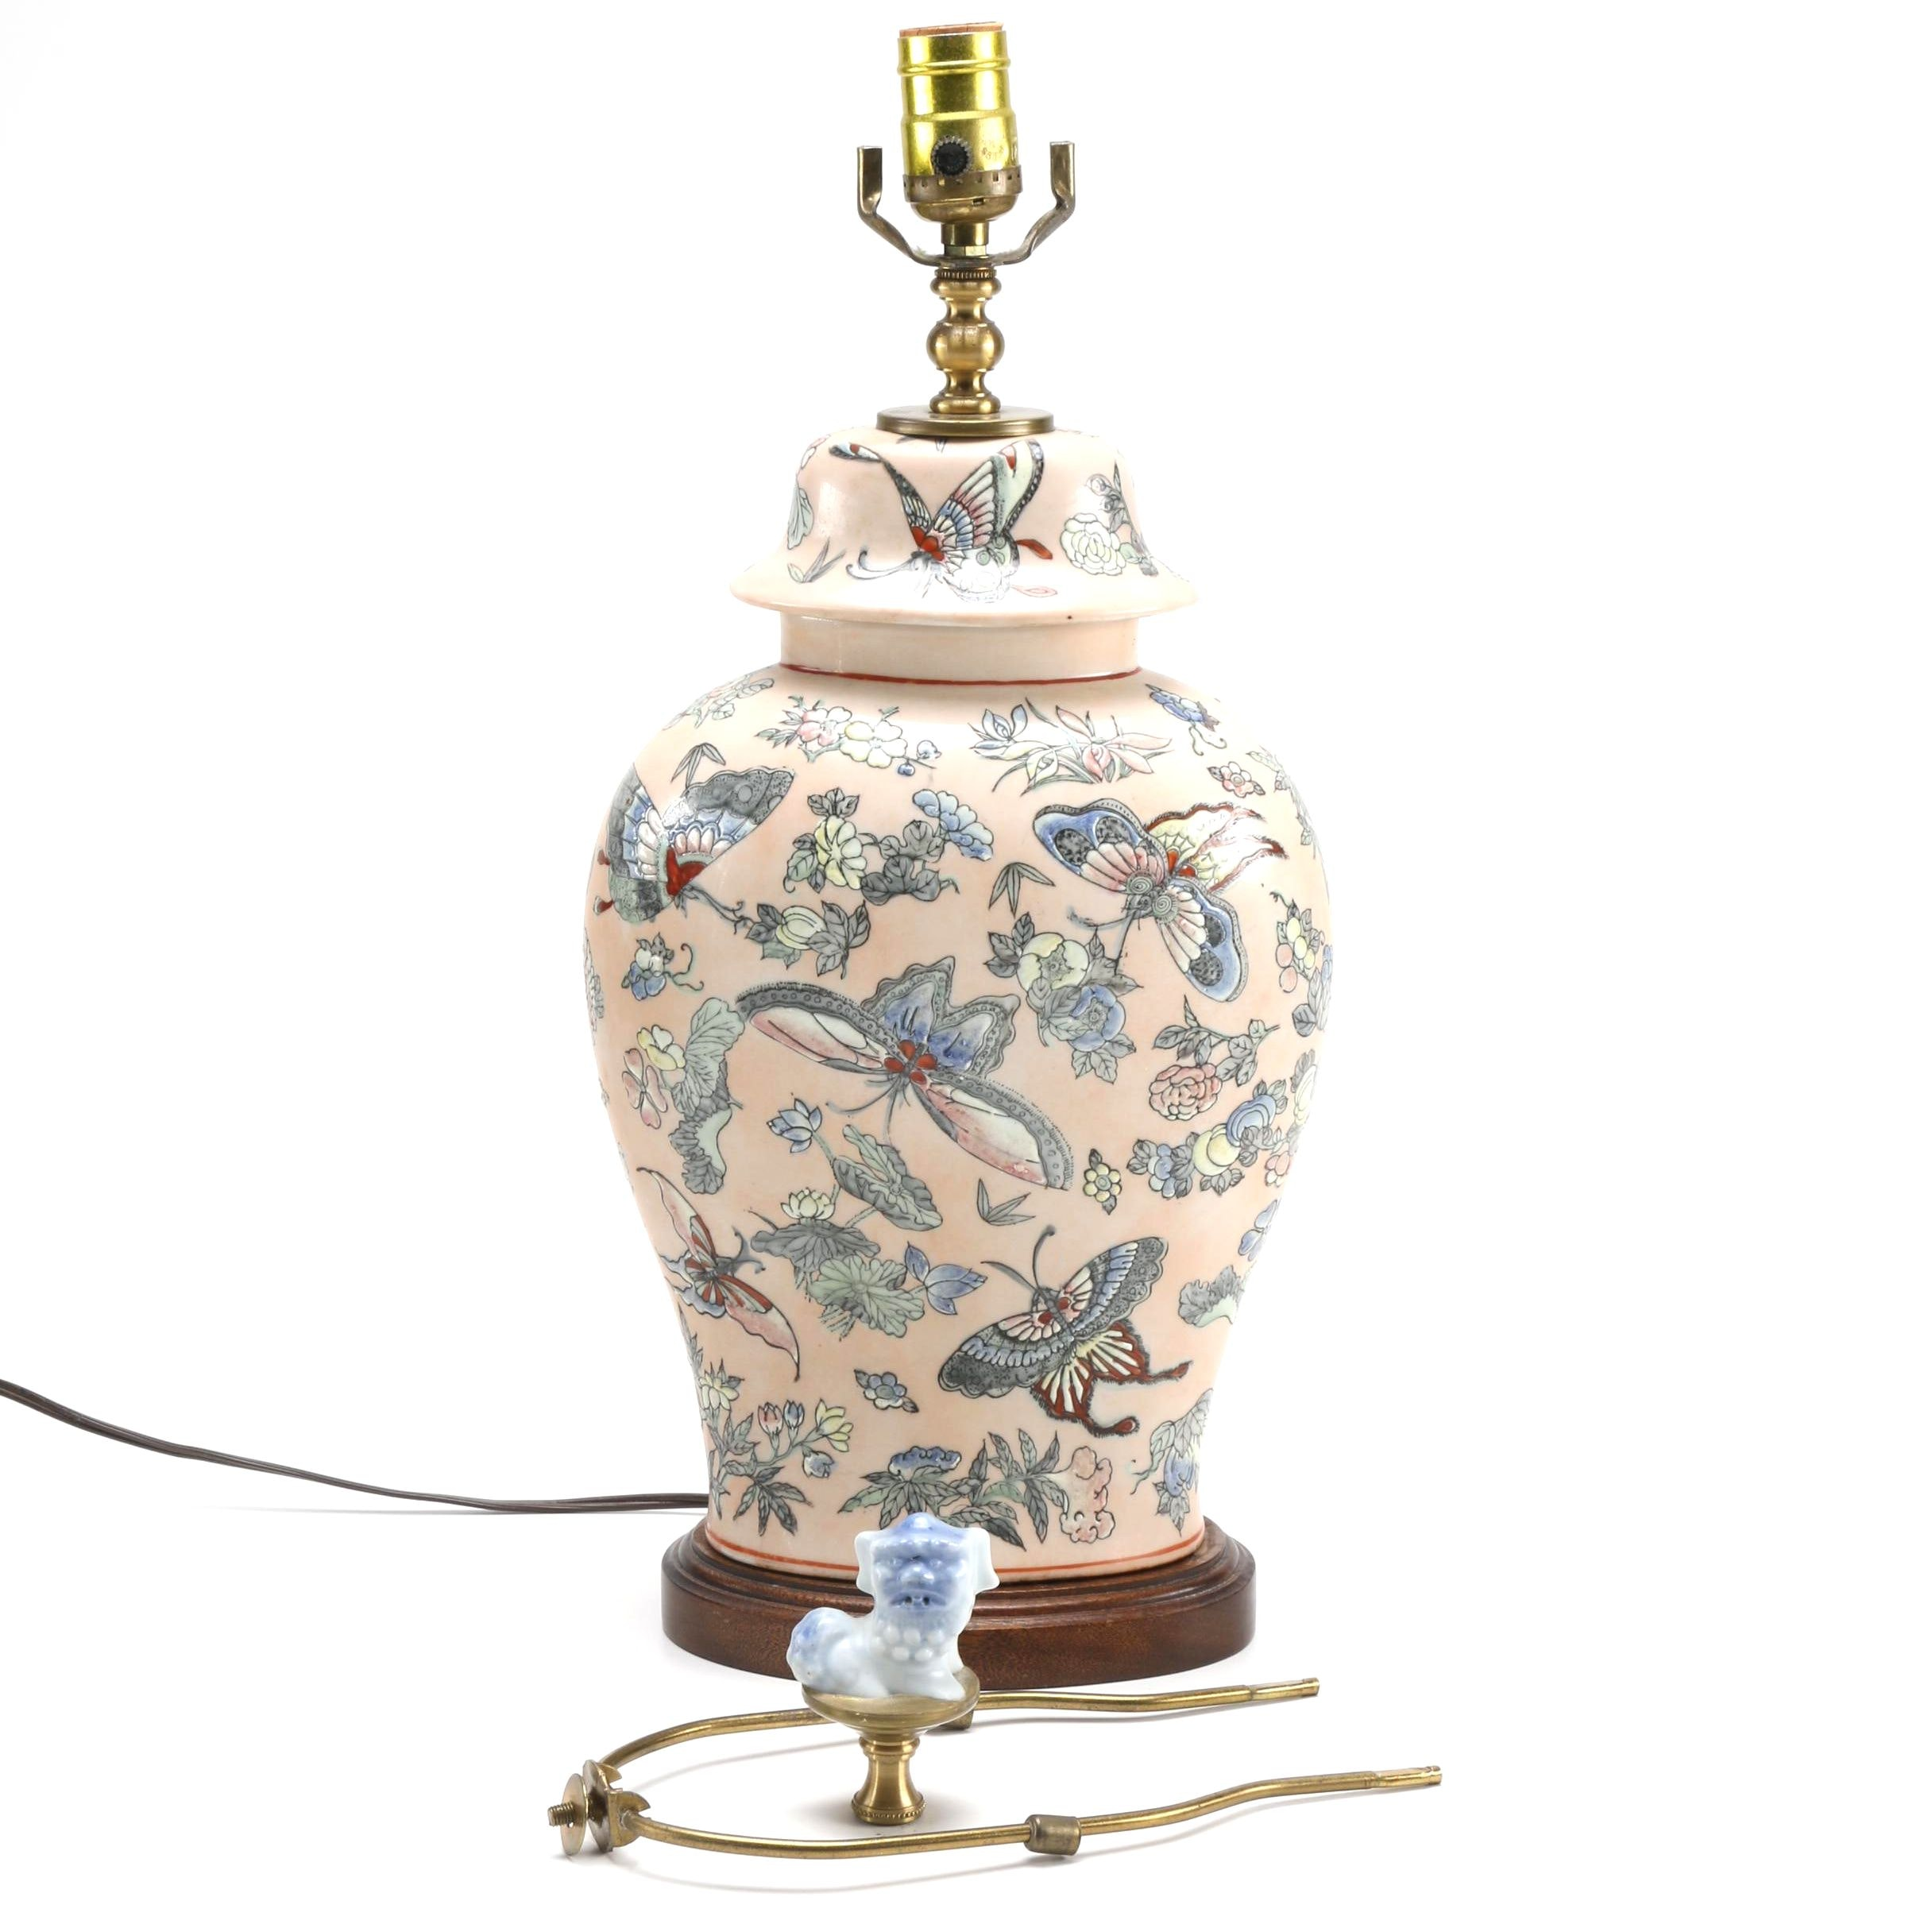 Chinese Ceramic Lamp With Guardian Lion Finial